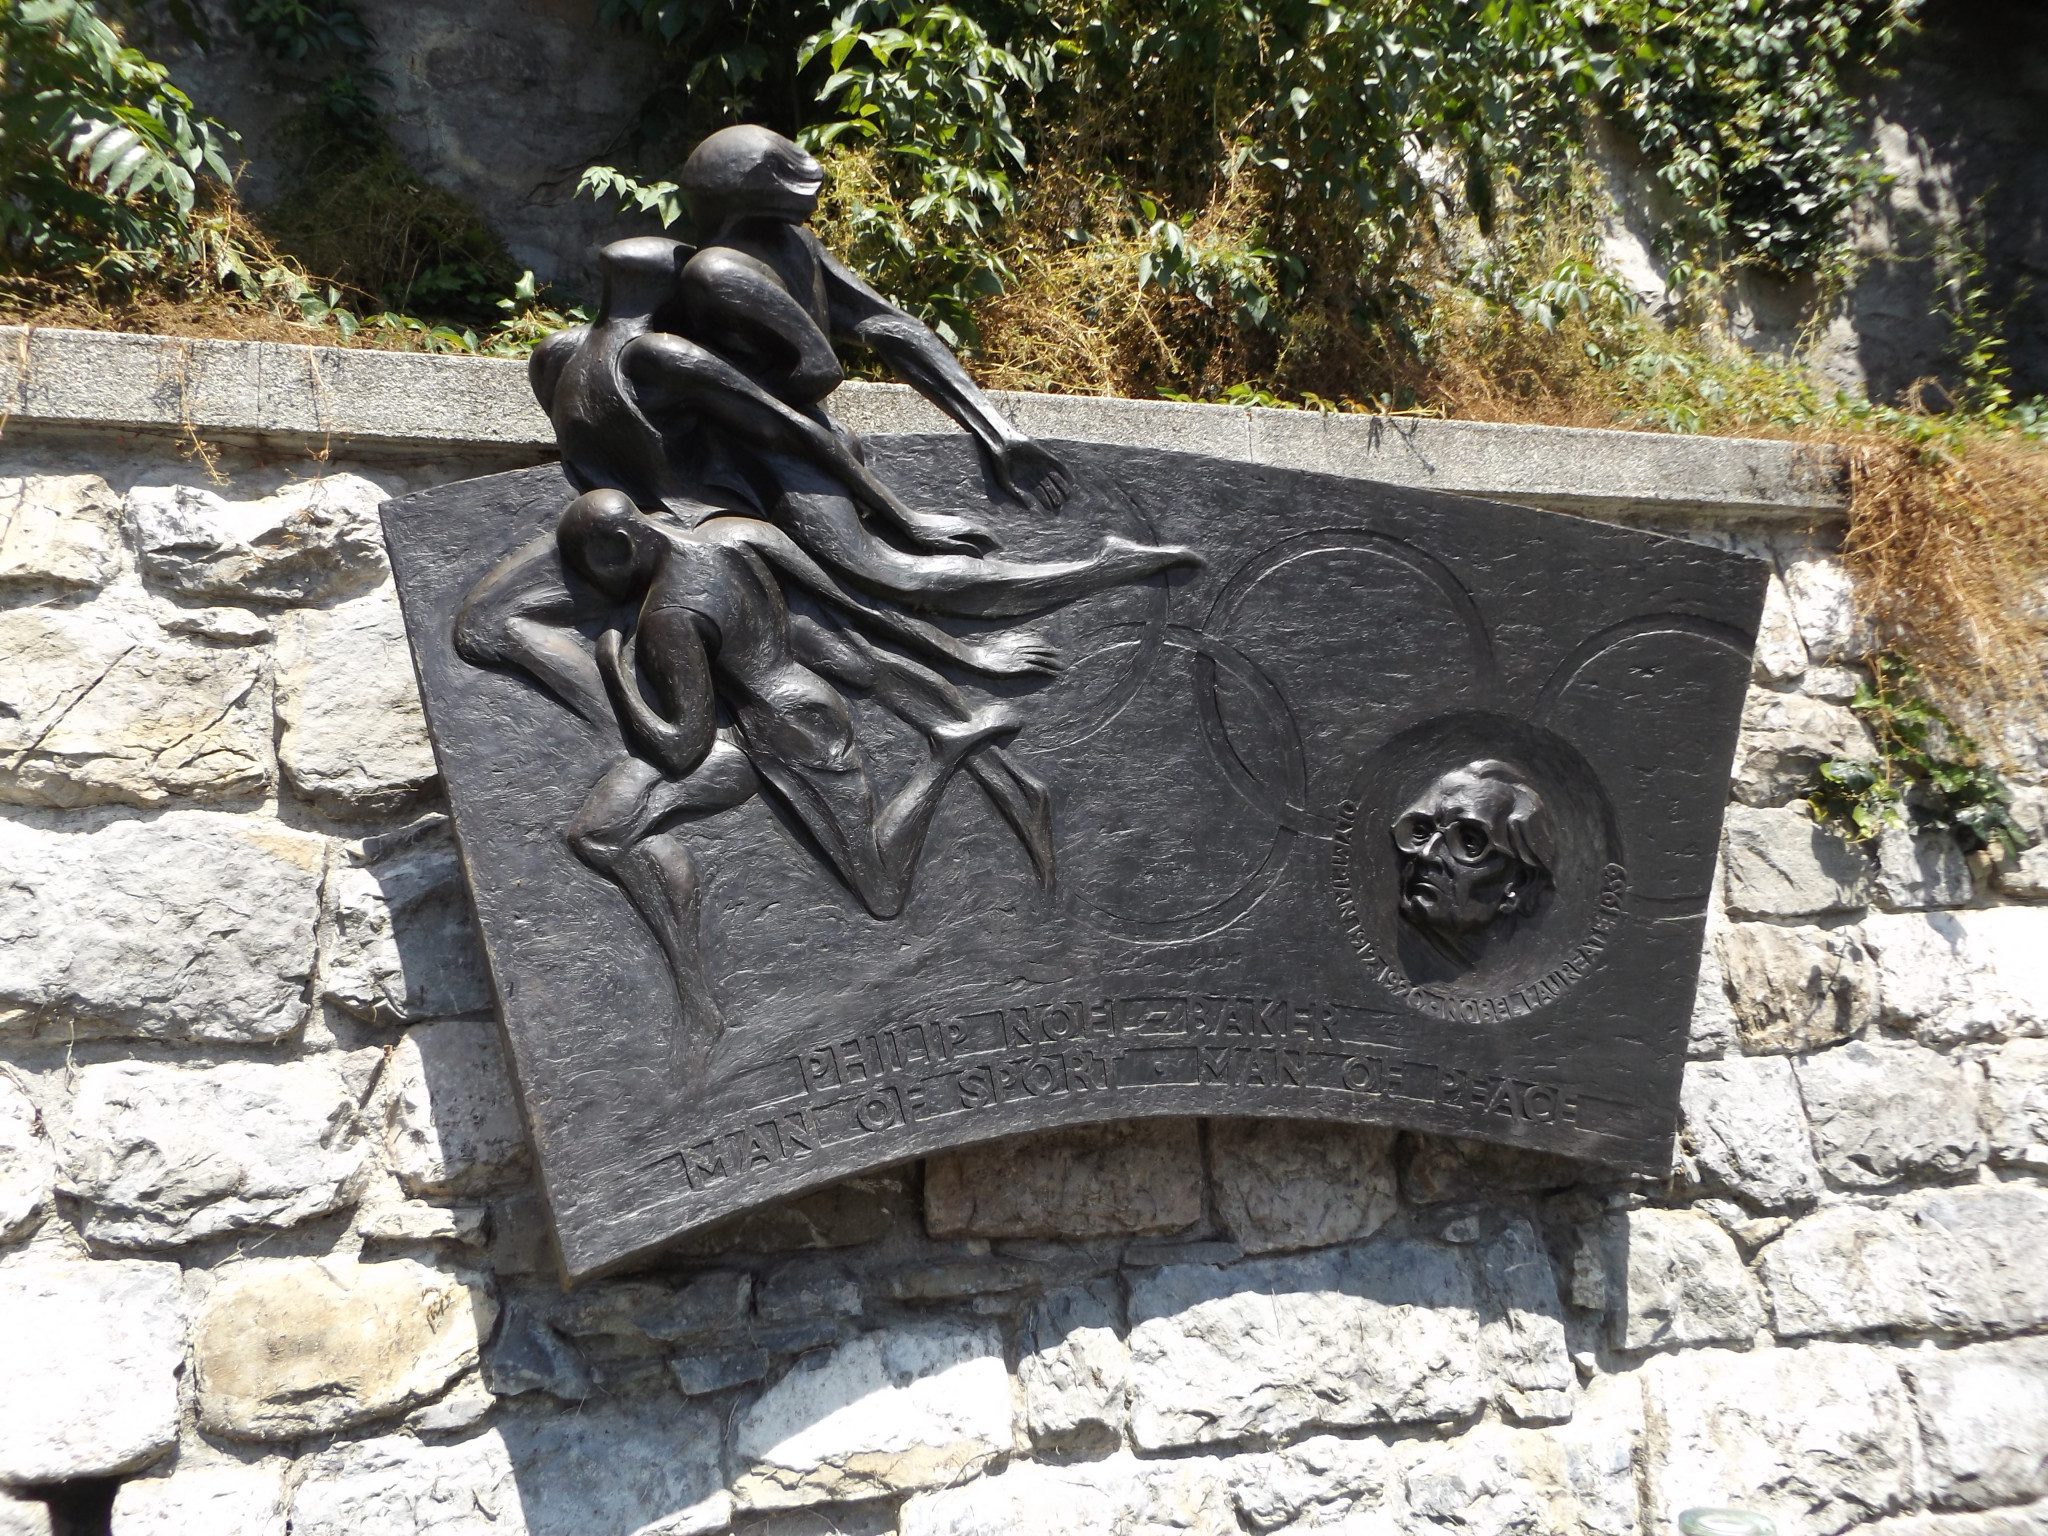 A plaque dedicated to Philip Noel-Baker in Olympic capital Lausanne ©ITG